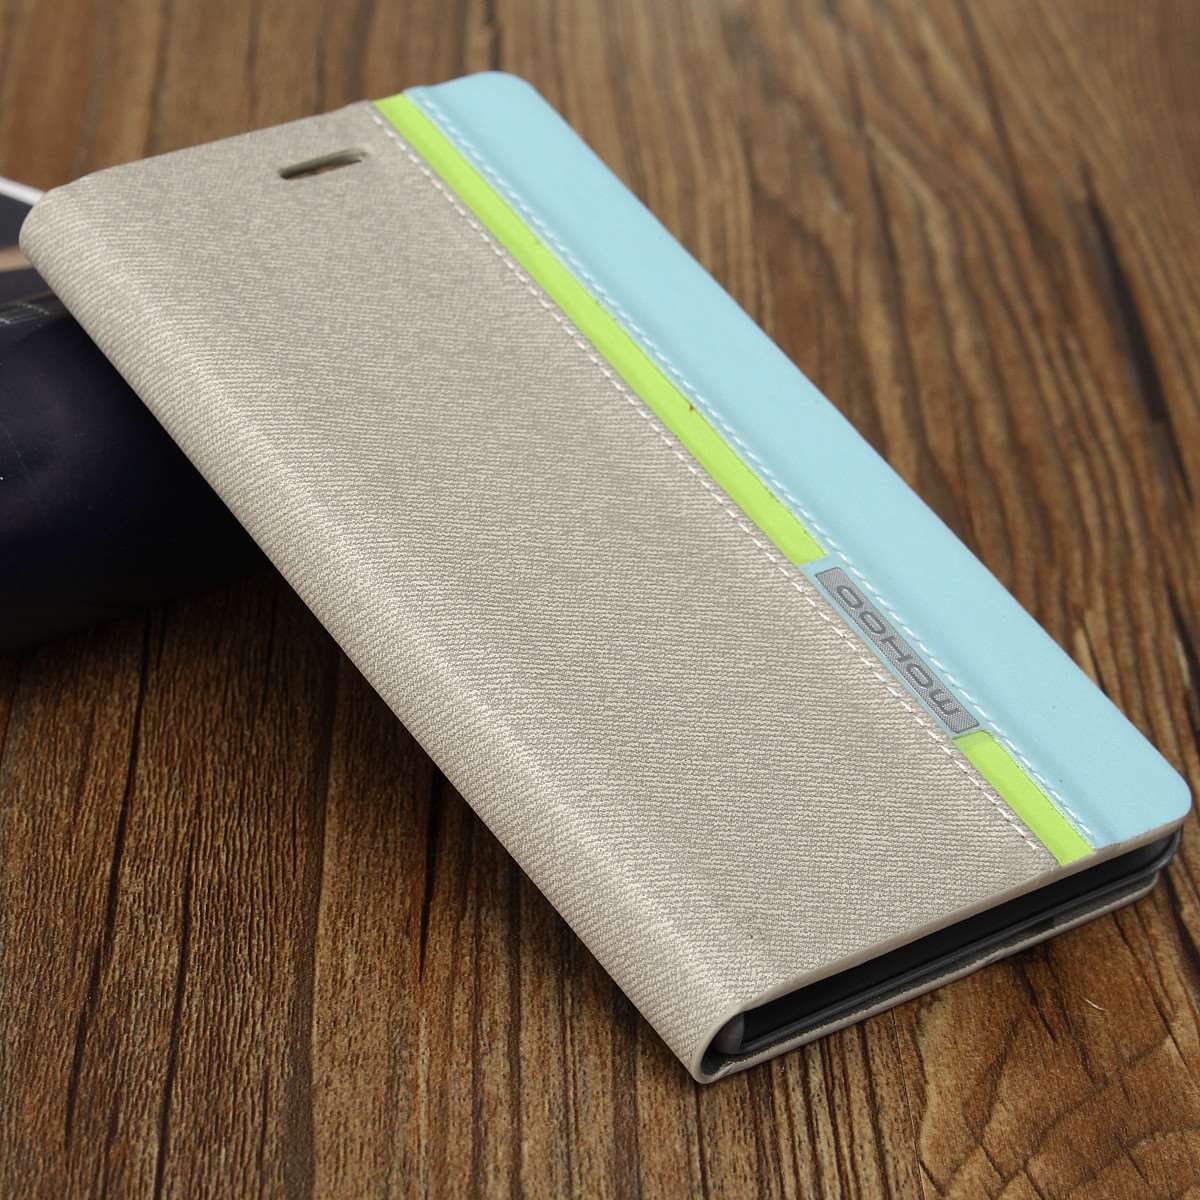 Hybrid Thin Flip Mobile Phone Synthetic Leather Wallet Card Case PC Cover For Lenovo P70 Phone Cases Stand(China (Mainland))